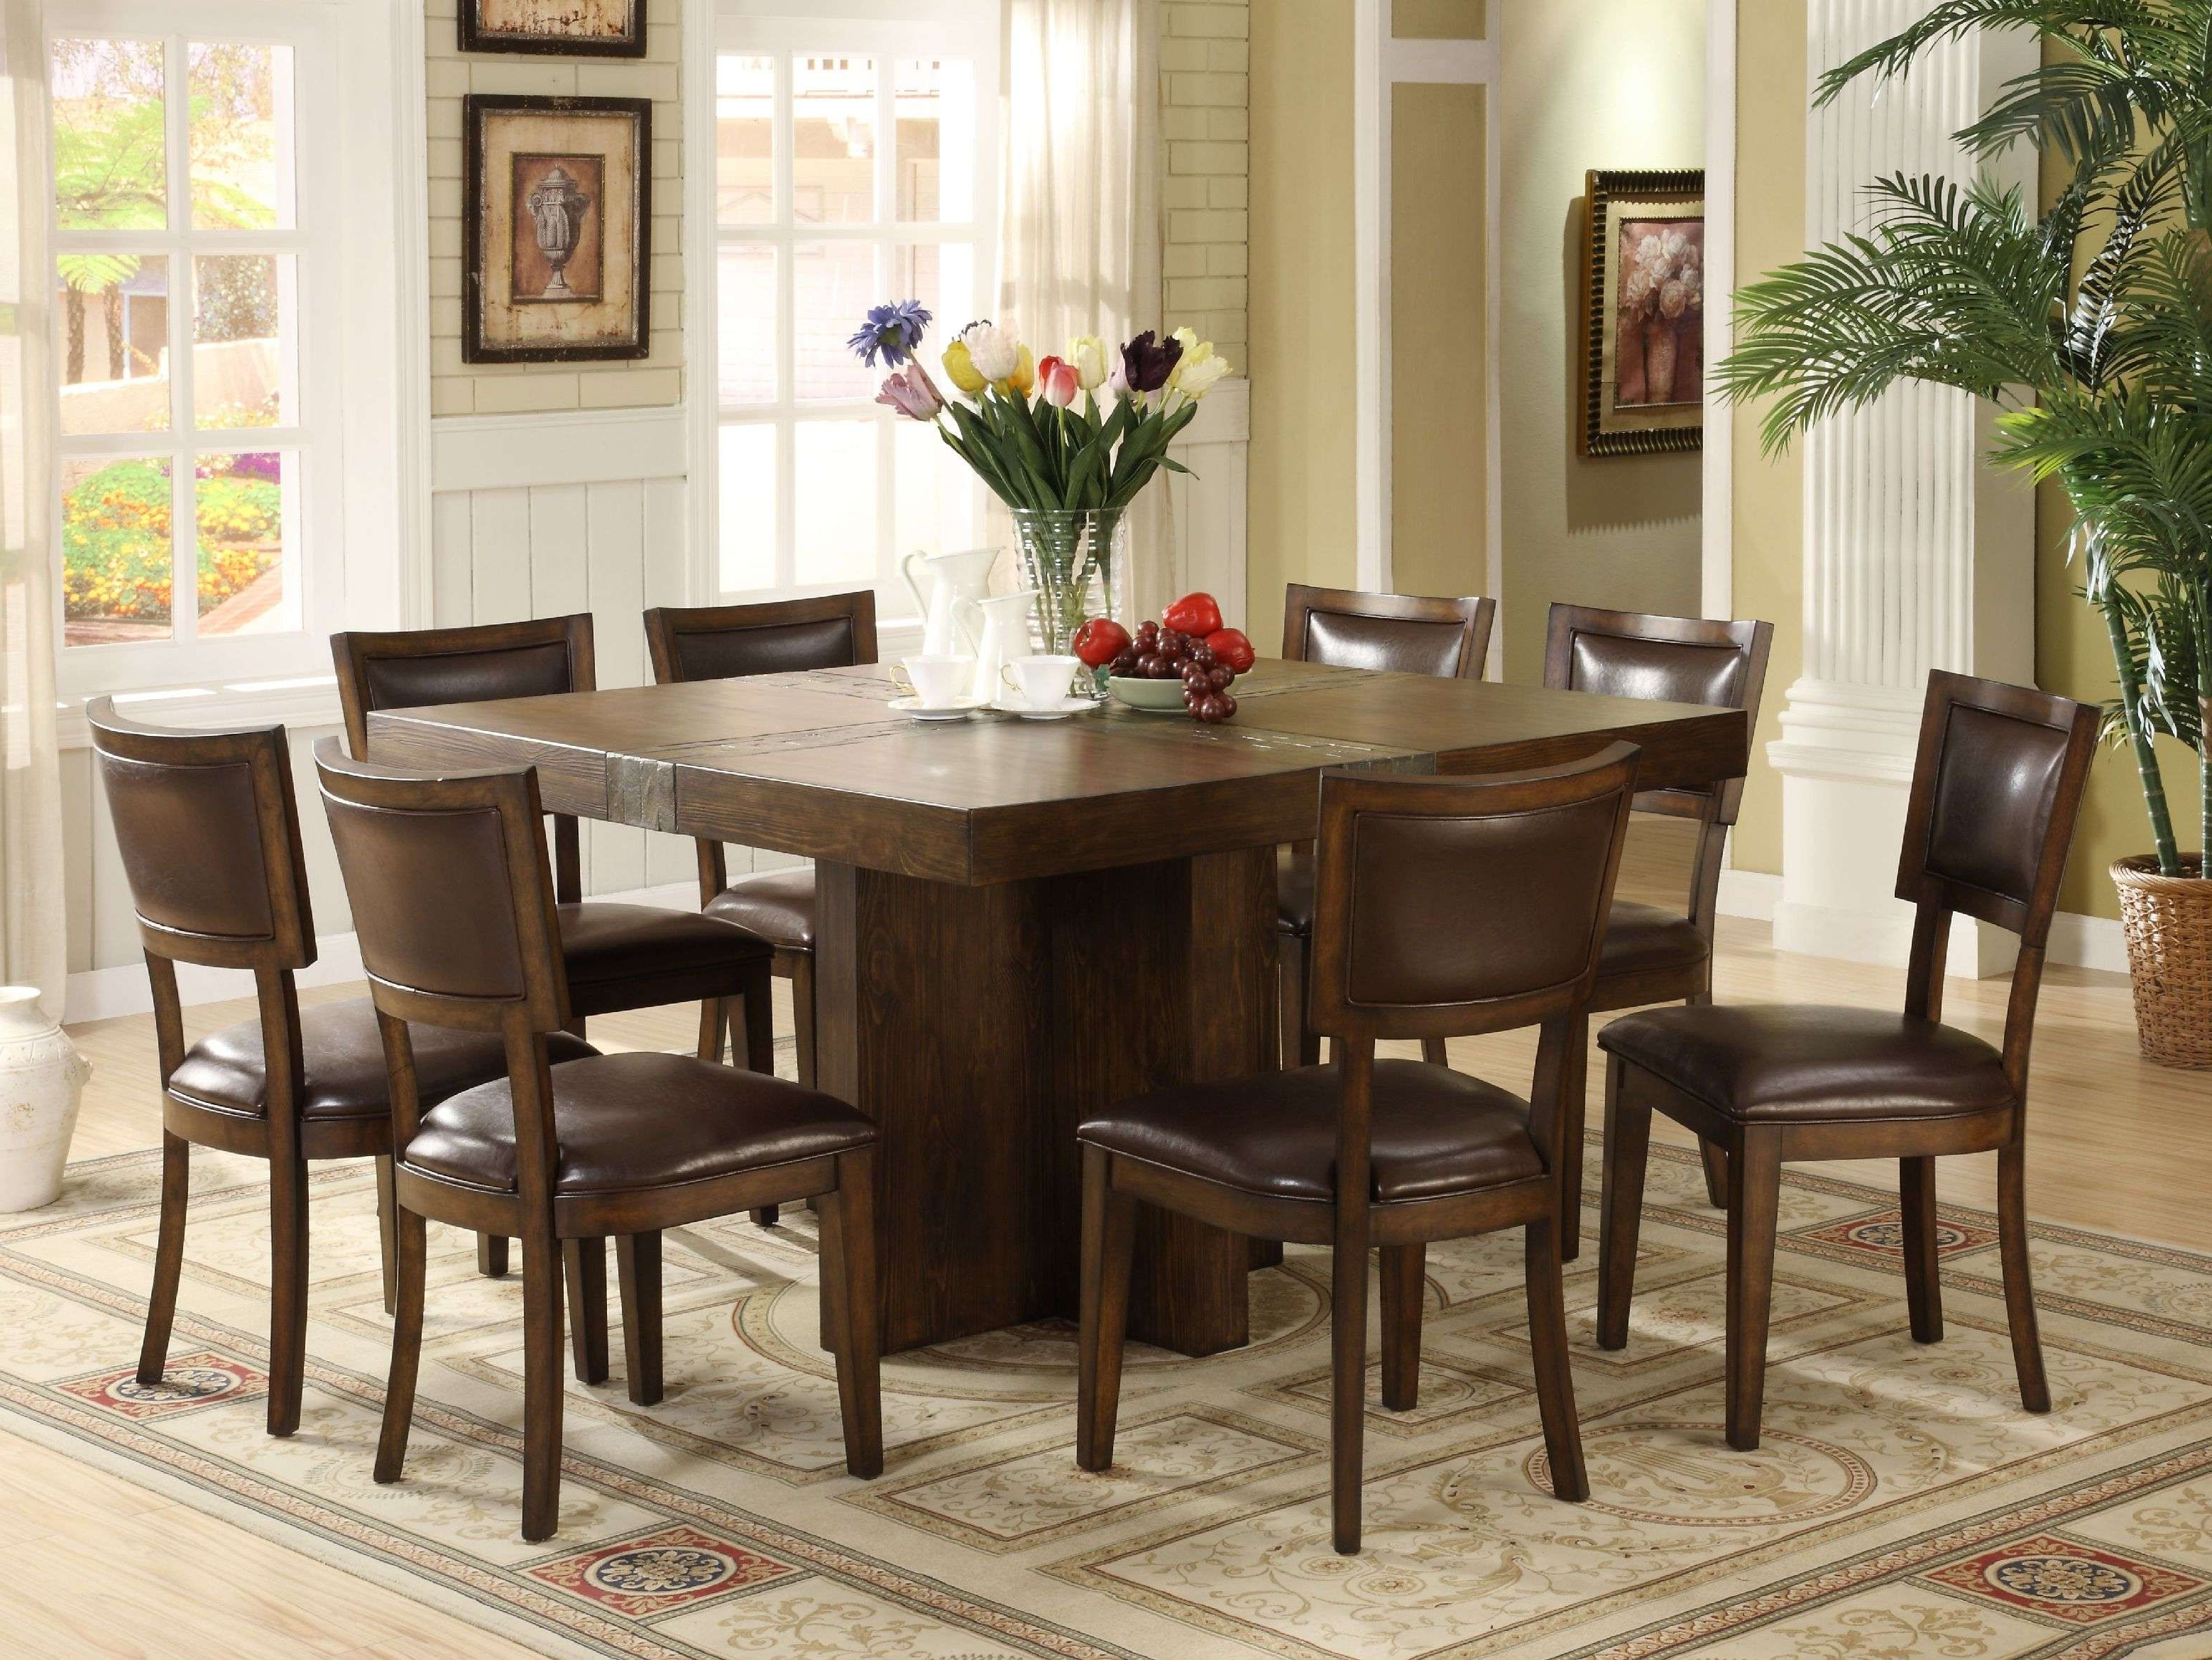 Dining Tables 8 Chairs Set with Fashionable Solid Oak Dining Room Table And 8 Chairs Unique Best 8 Seater Dining